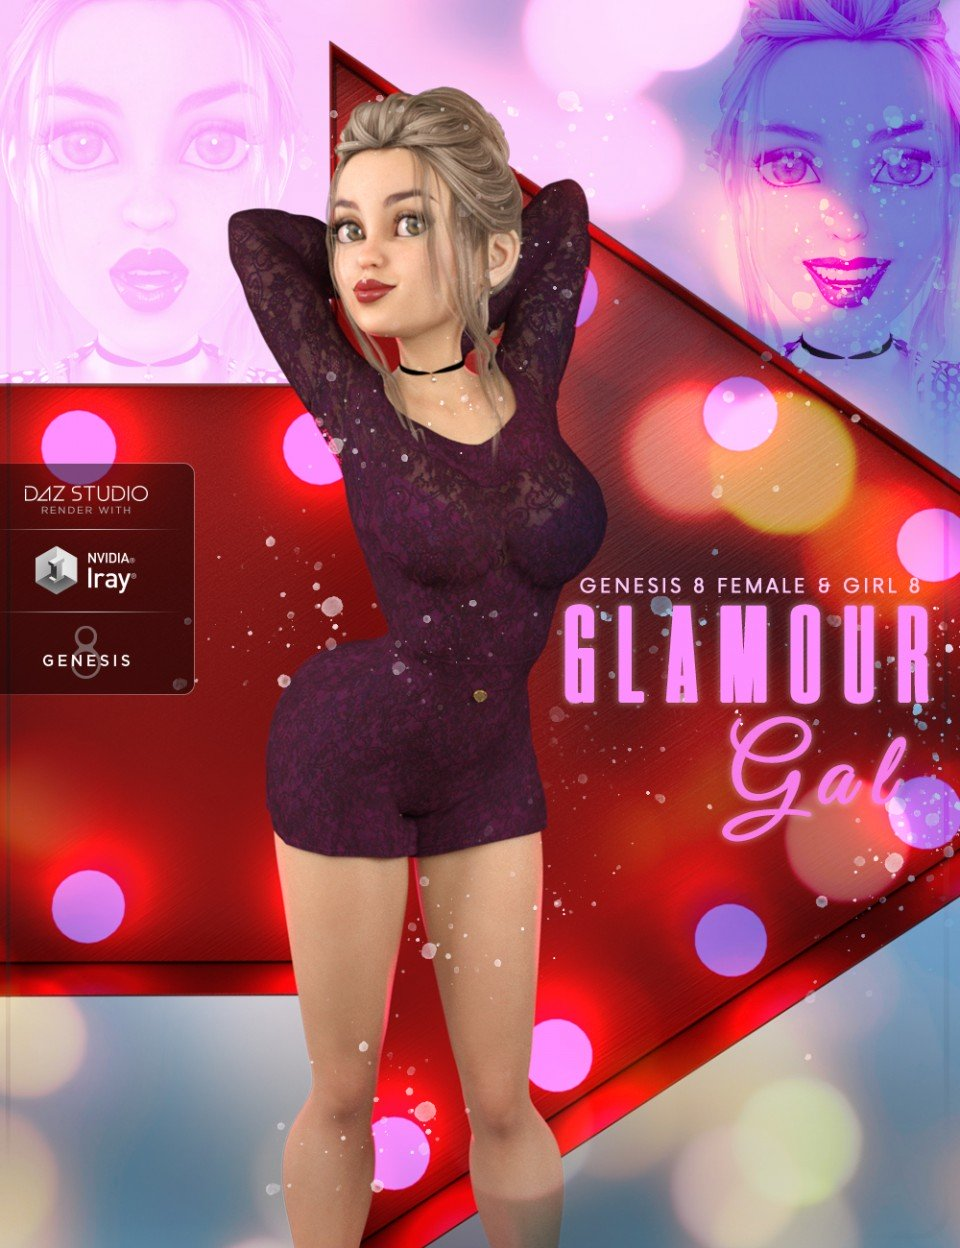 Z Glamour Gal – Poses and Expressions for The Girl 8 and Genesis 8 Female_DAZ3D下载站